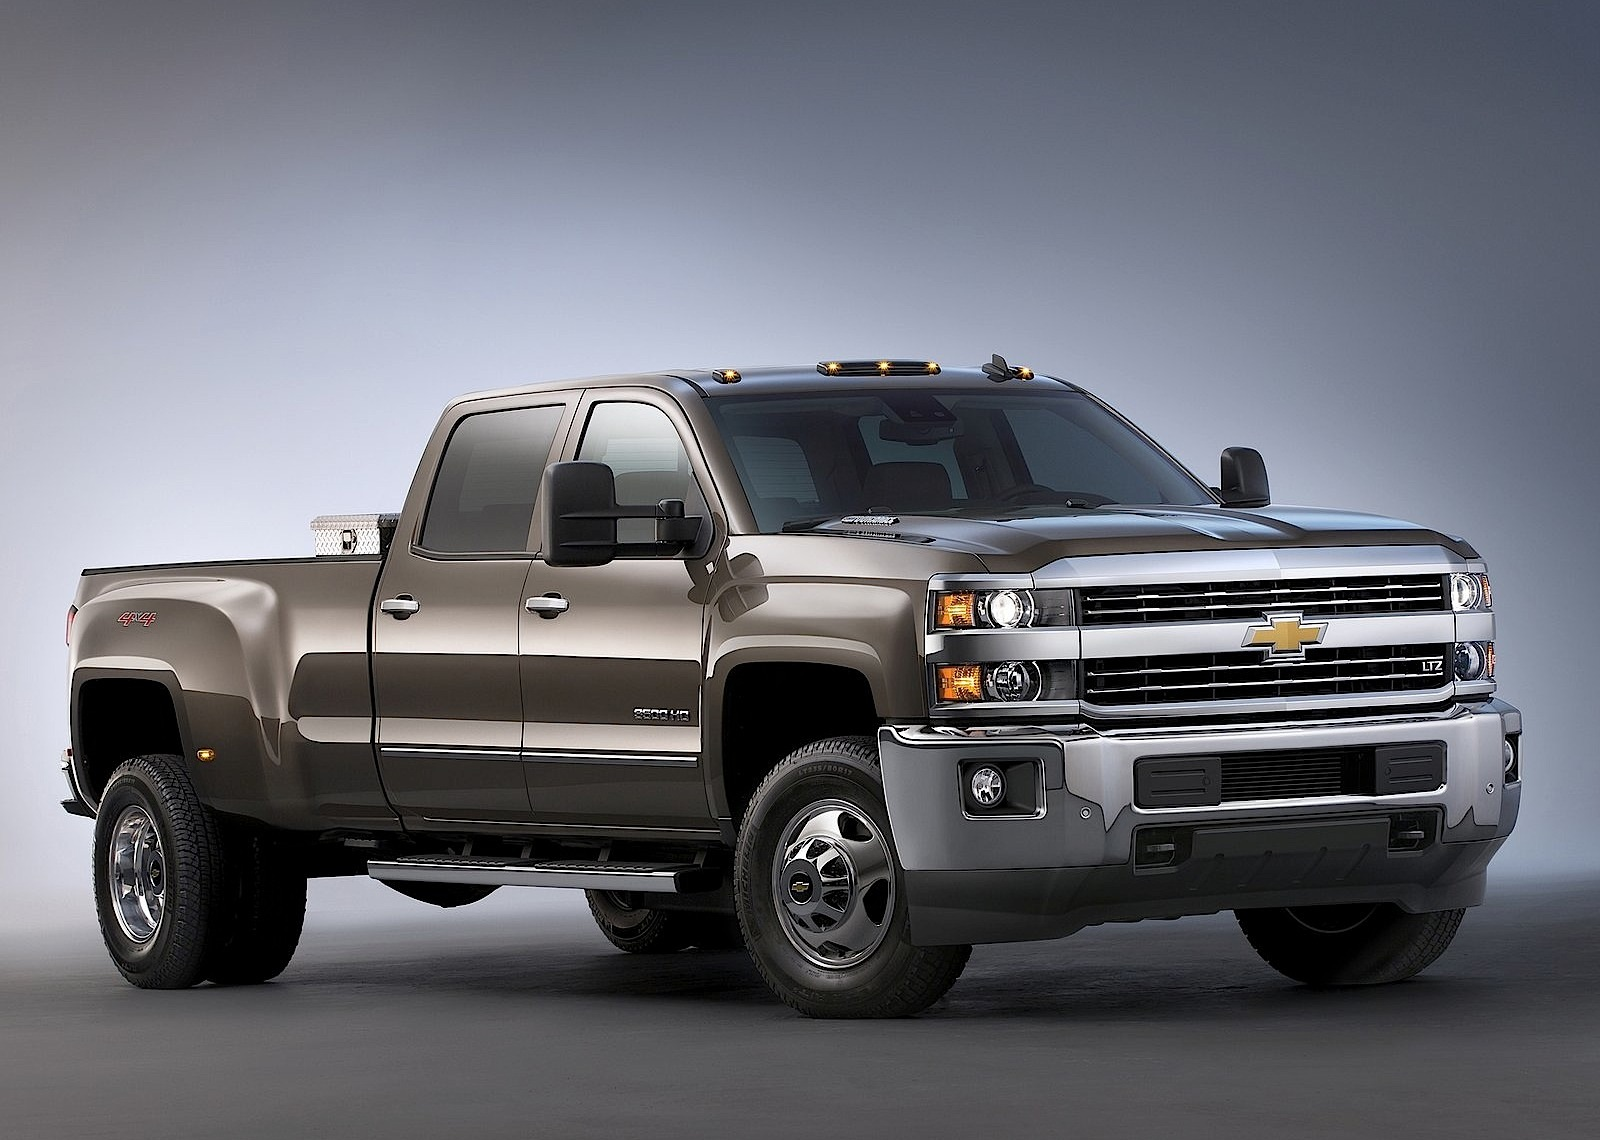 Chevrolet Silverado 3500 Hd Crew Cab Specs Photos 2013 2014 2015 2016 2017 2018 2019 2020 Autoevolution